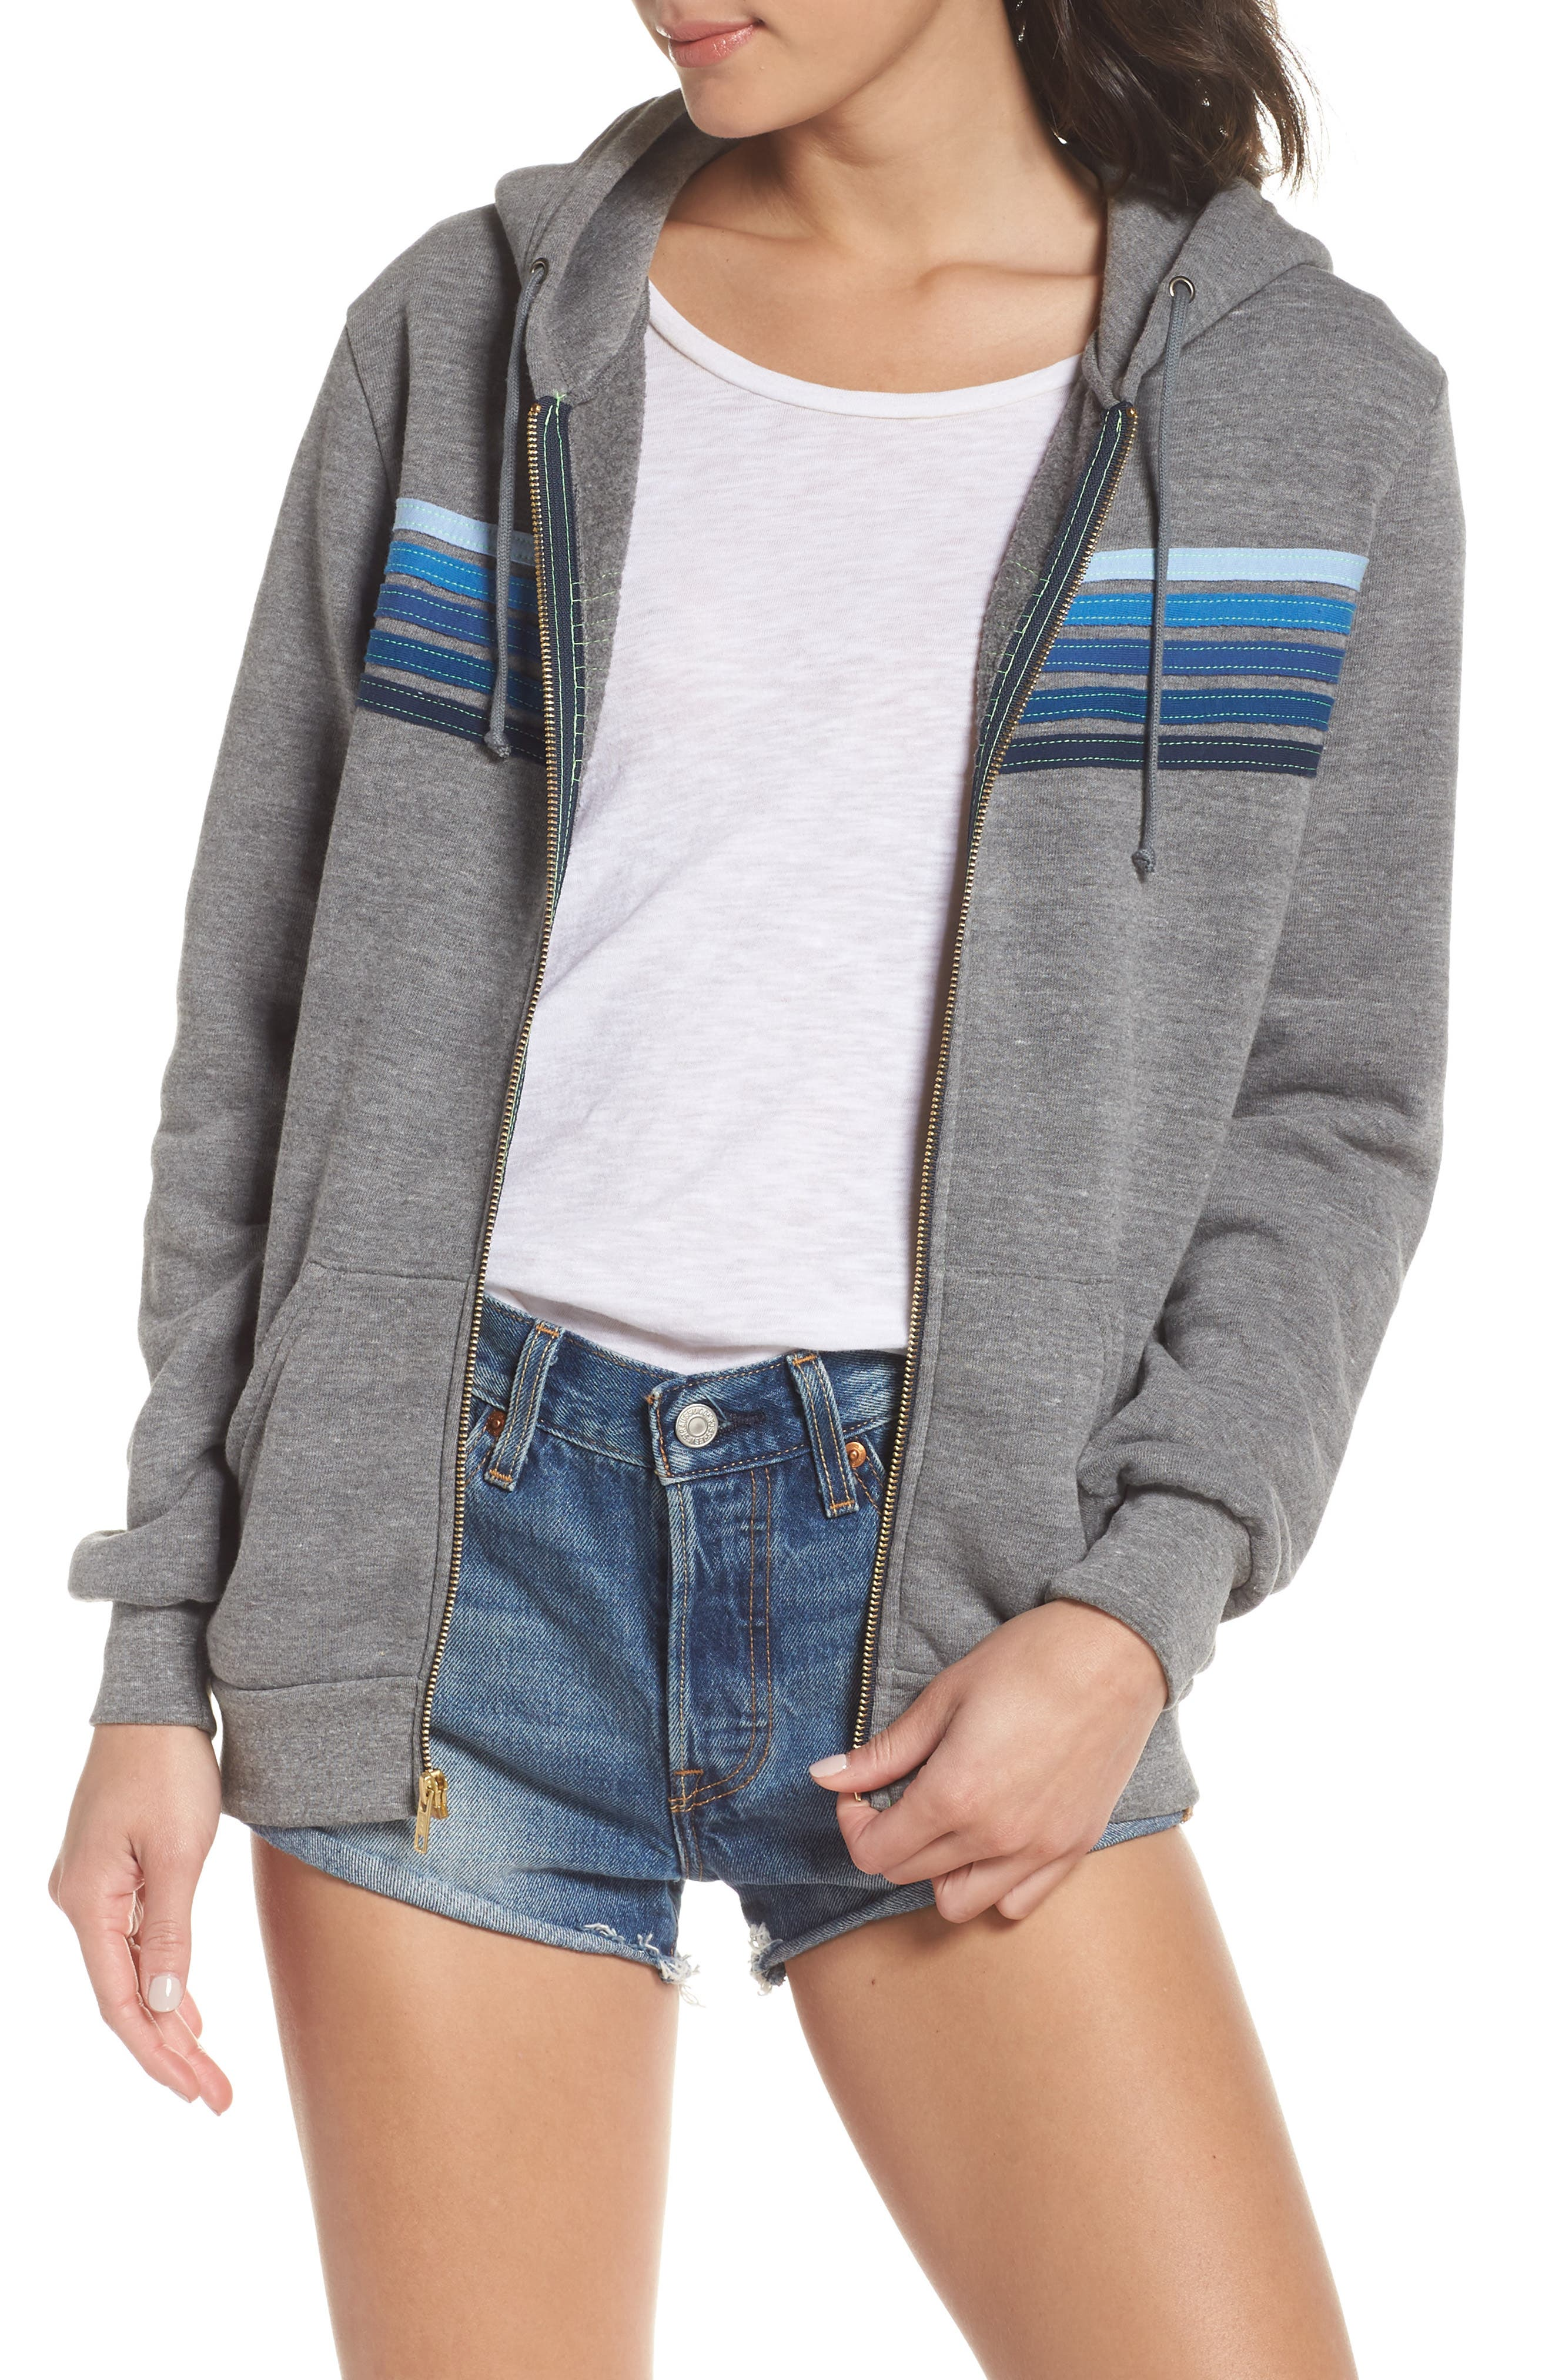 5-Stripe Zip Hoodie,                             Main thumbnail 1, color,                             Heather Grey/ Blue Stripes